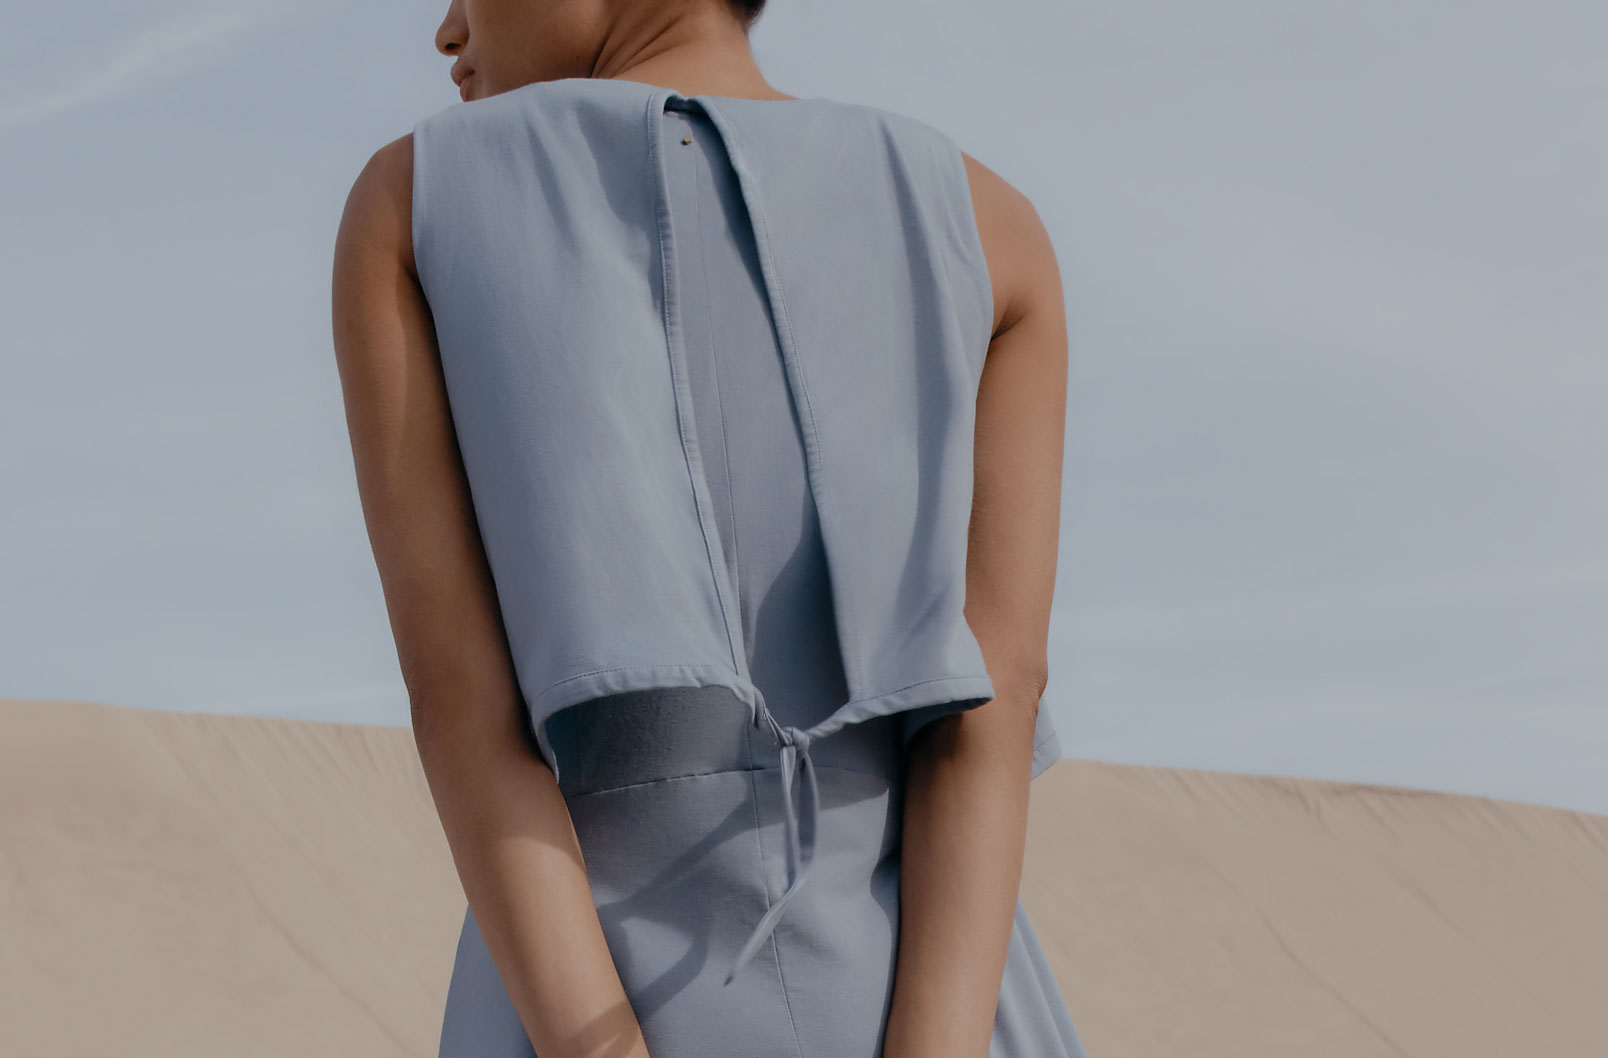 Asymmetrical Overlay Dress with back closure